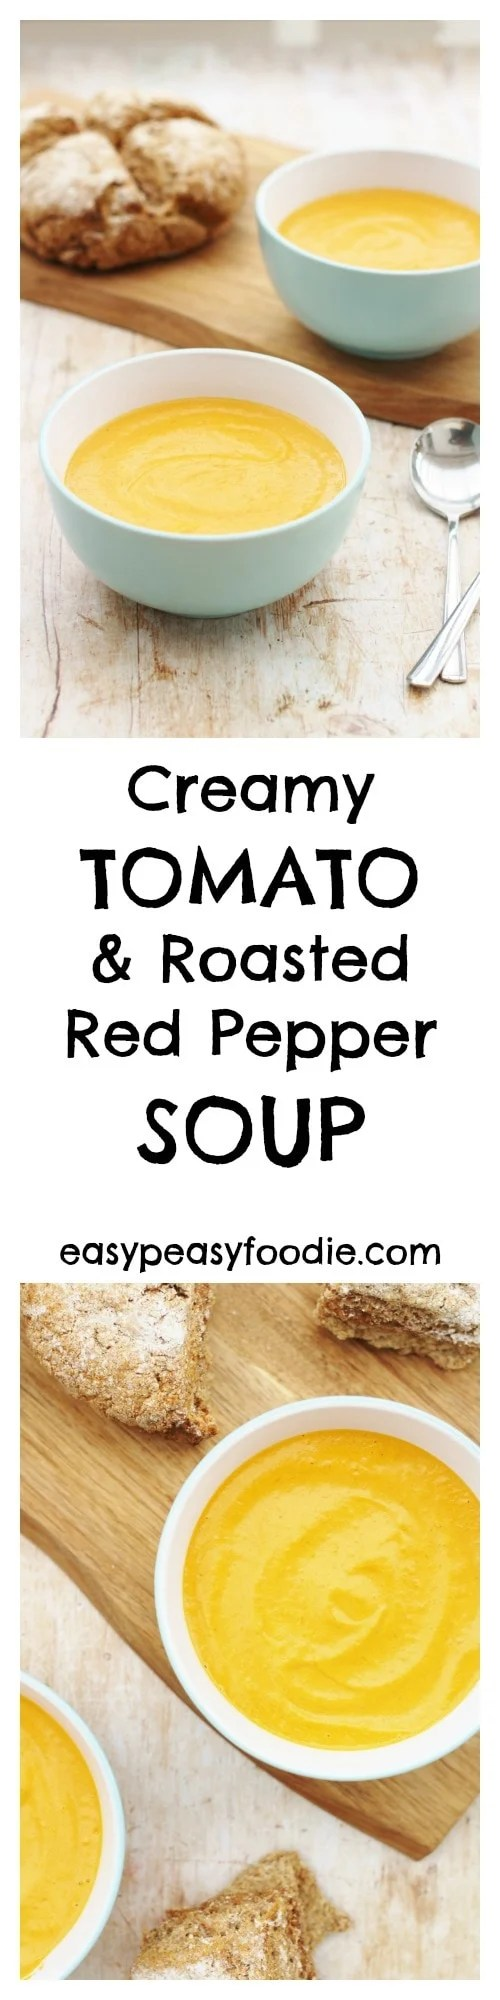 Deliciously creamy and rich this gorgeous Tomato and Roasted Red Pepper Soup is easy to prepare and full of flavour. And FINALLY I have found a way to make tomato soup without having to remove the skins! #soup #tomatosoup #roastedpeppers #vegetarian #Froothie #blender #winterfood #winterwarmer #comfortfood #easyrecipes #easydinners #midweekmeals #lunch #familydinners #easypeasyfoodie